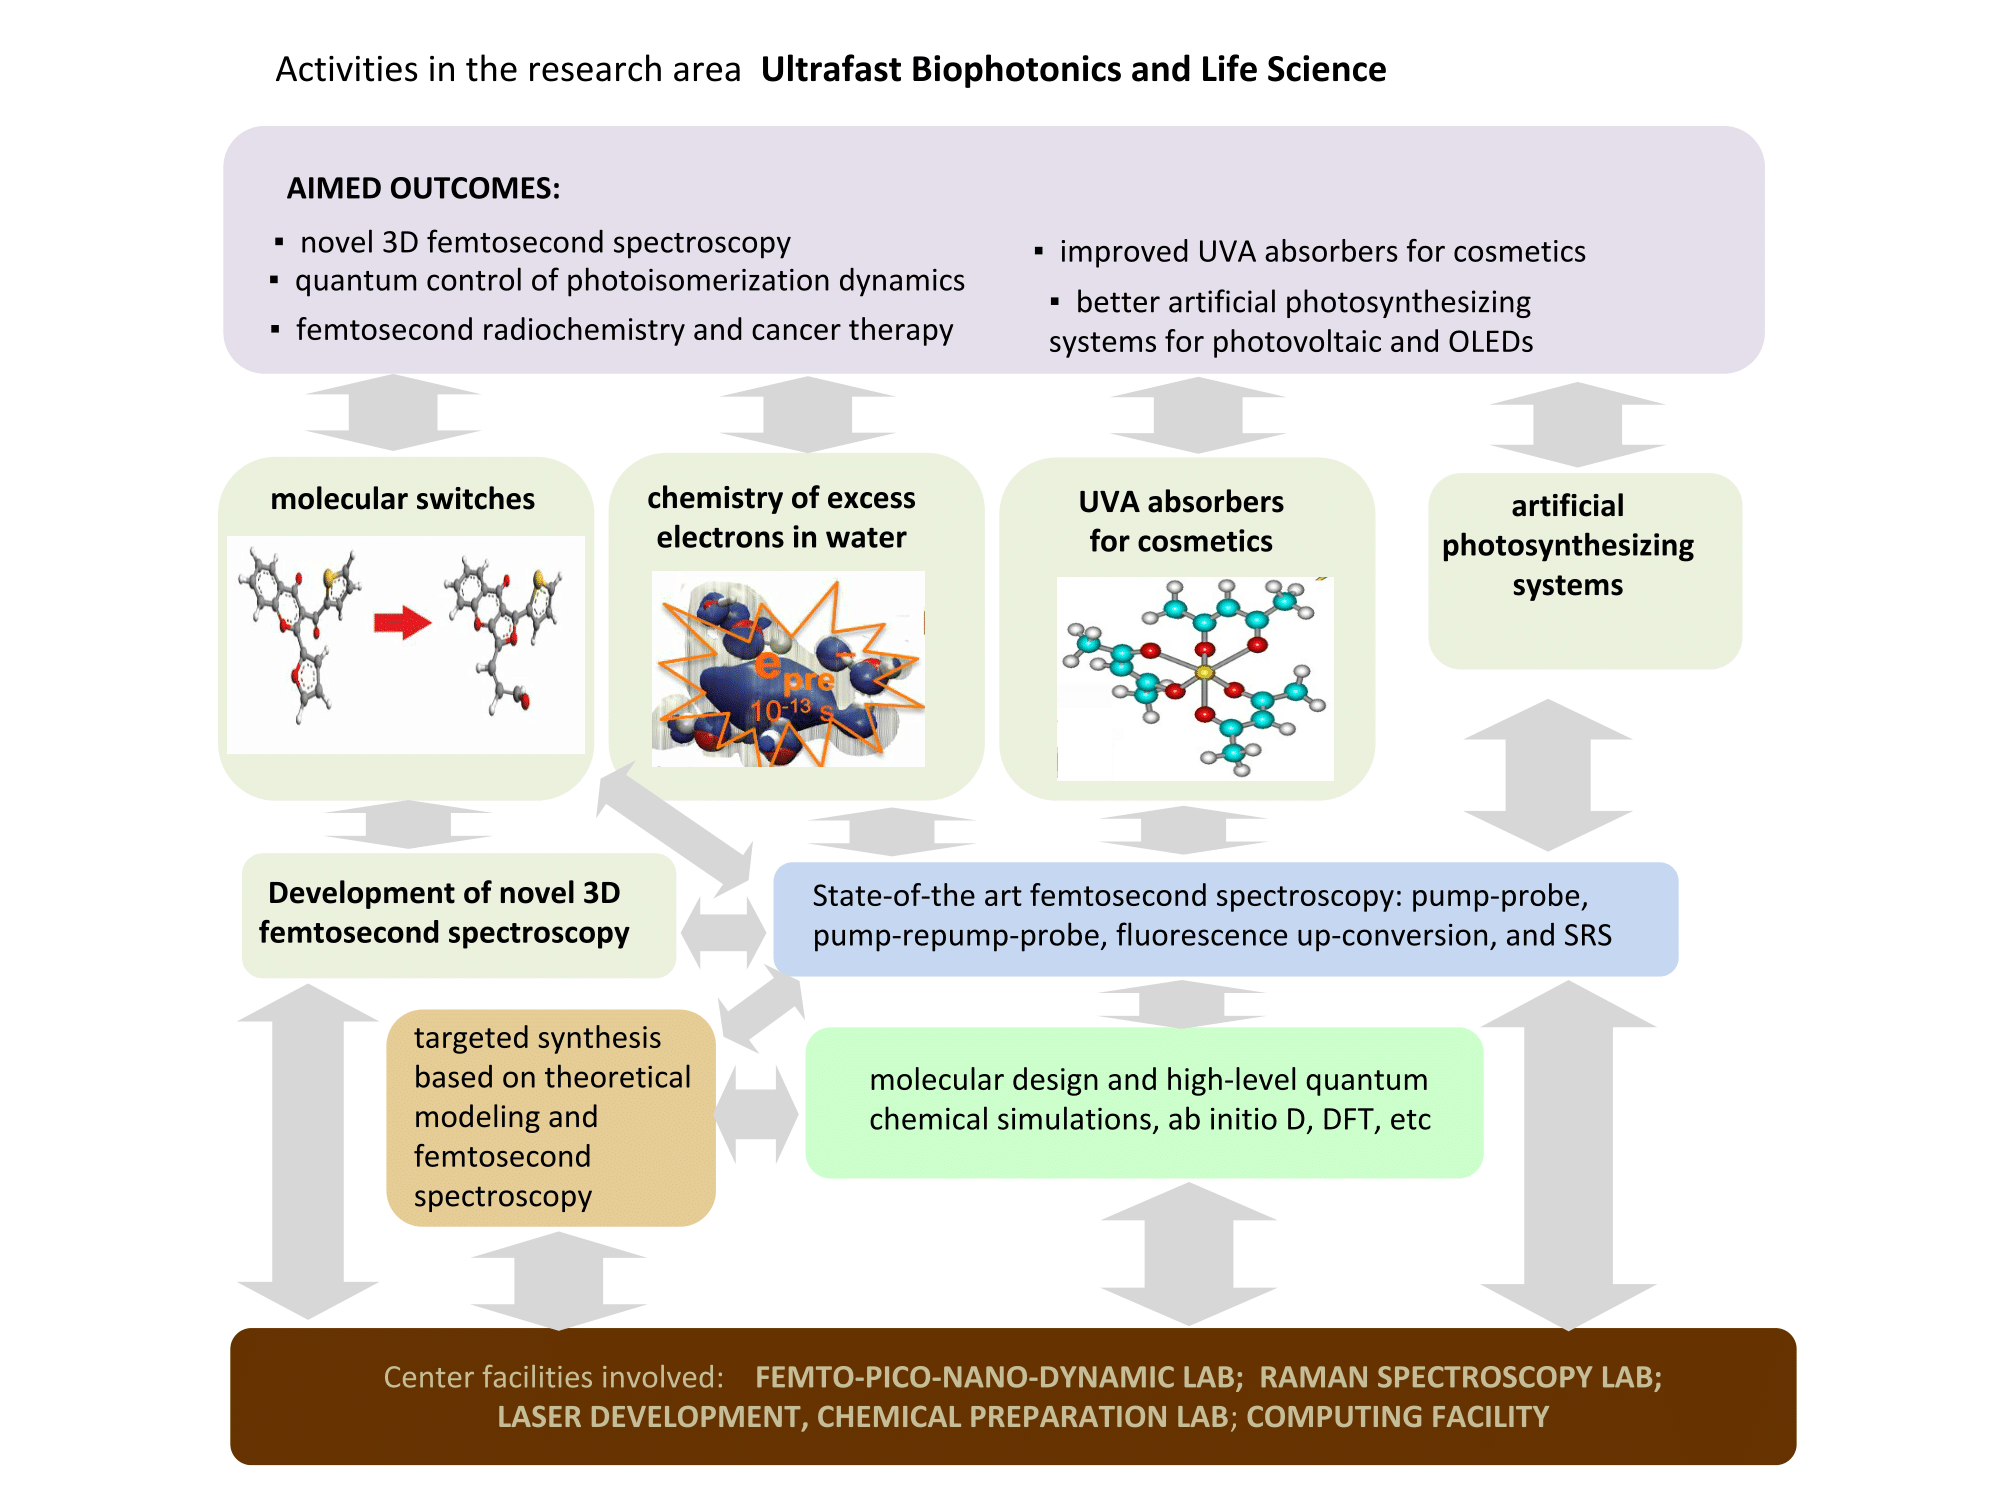 Graphical abstract of Ultrafast Biophotonics and Life Science.